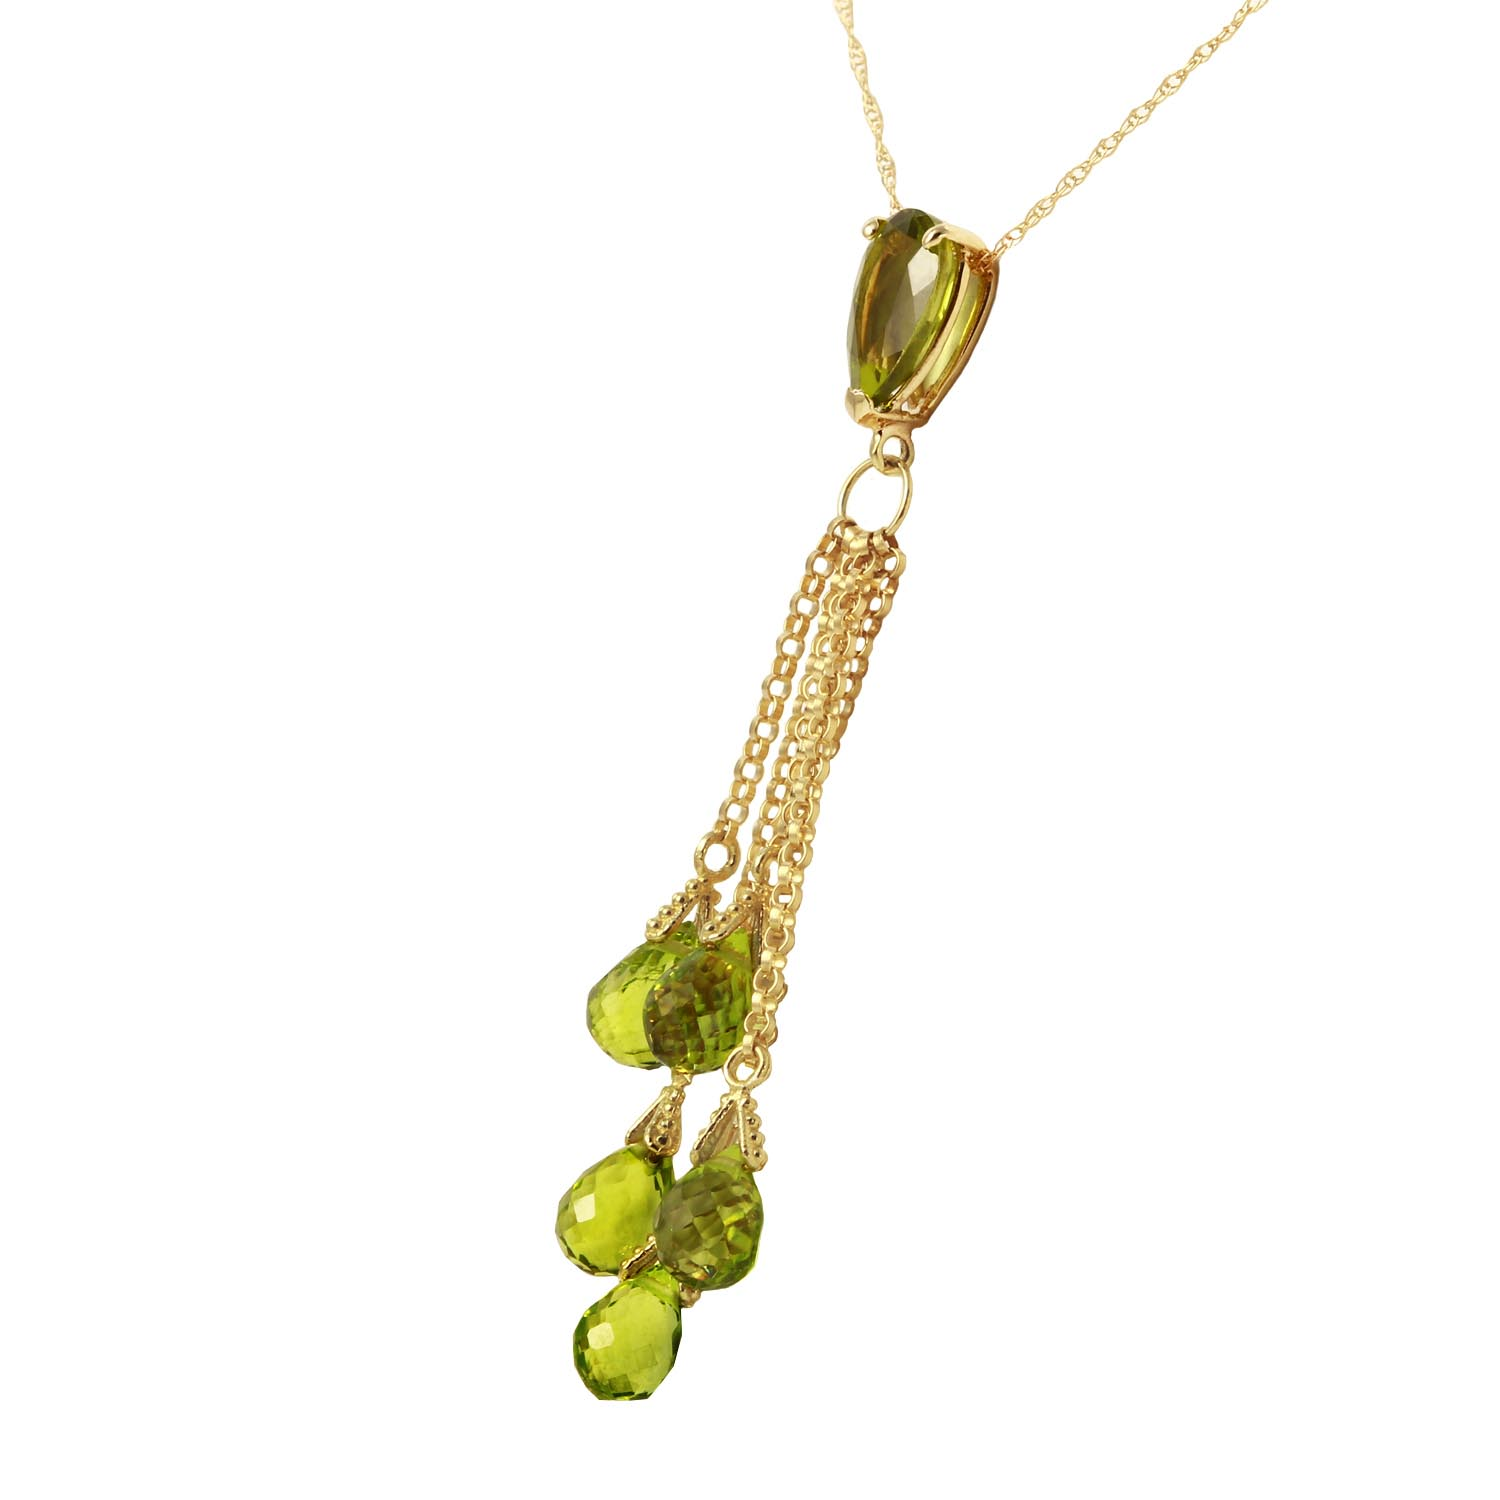 Peridot Comet Tail Pendant Necklace 7.5ctw in 9ct Gold